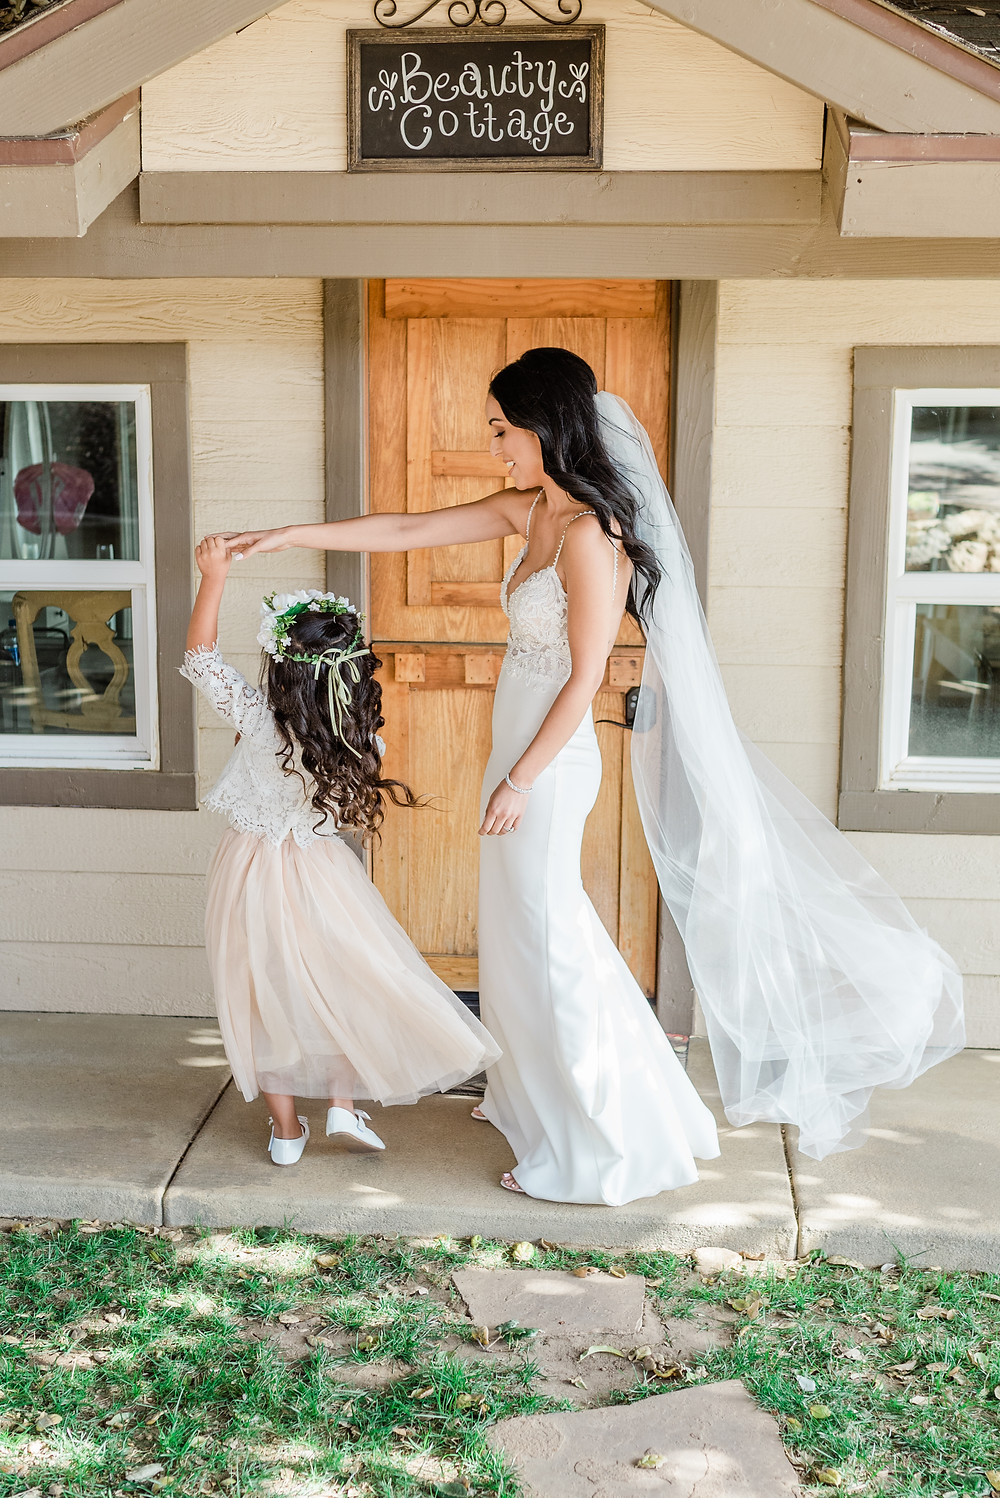 Serendipity Garden Wedding Photography, Oak Glen Ca